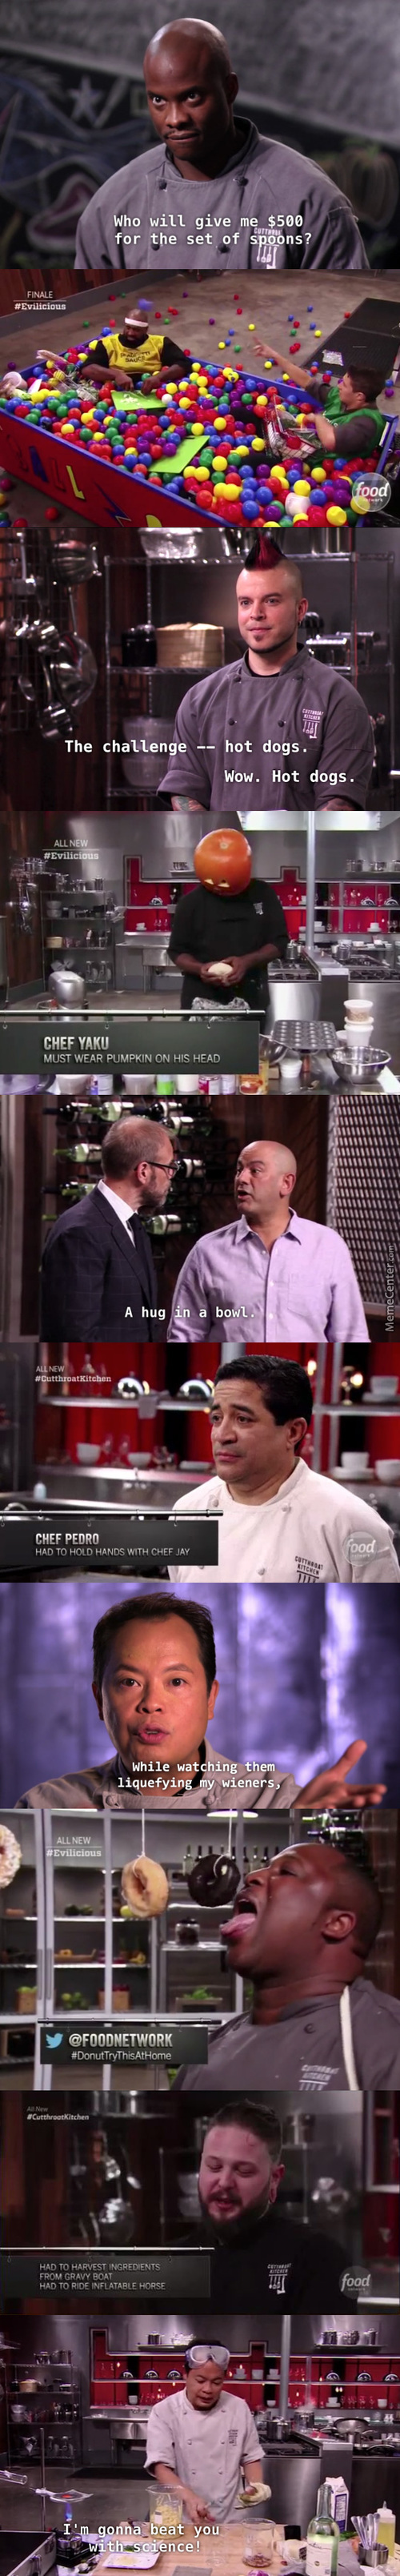 Cutthroat Kitchen Is More Or Less The Mario Party Of Competitive Cooking Shows.